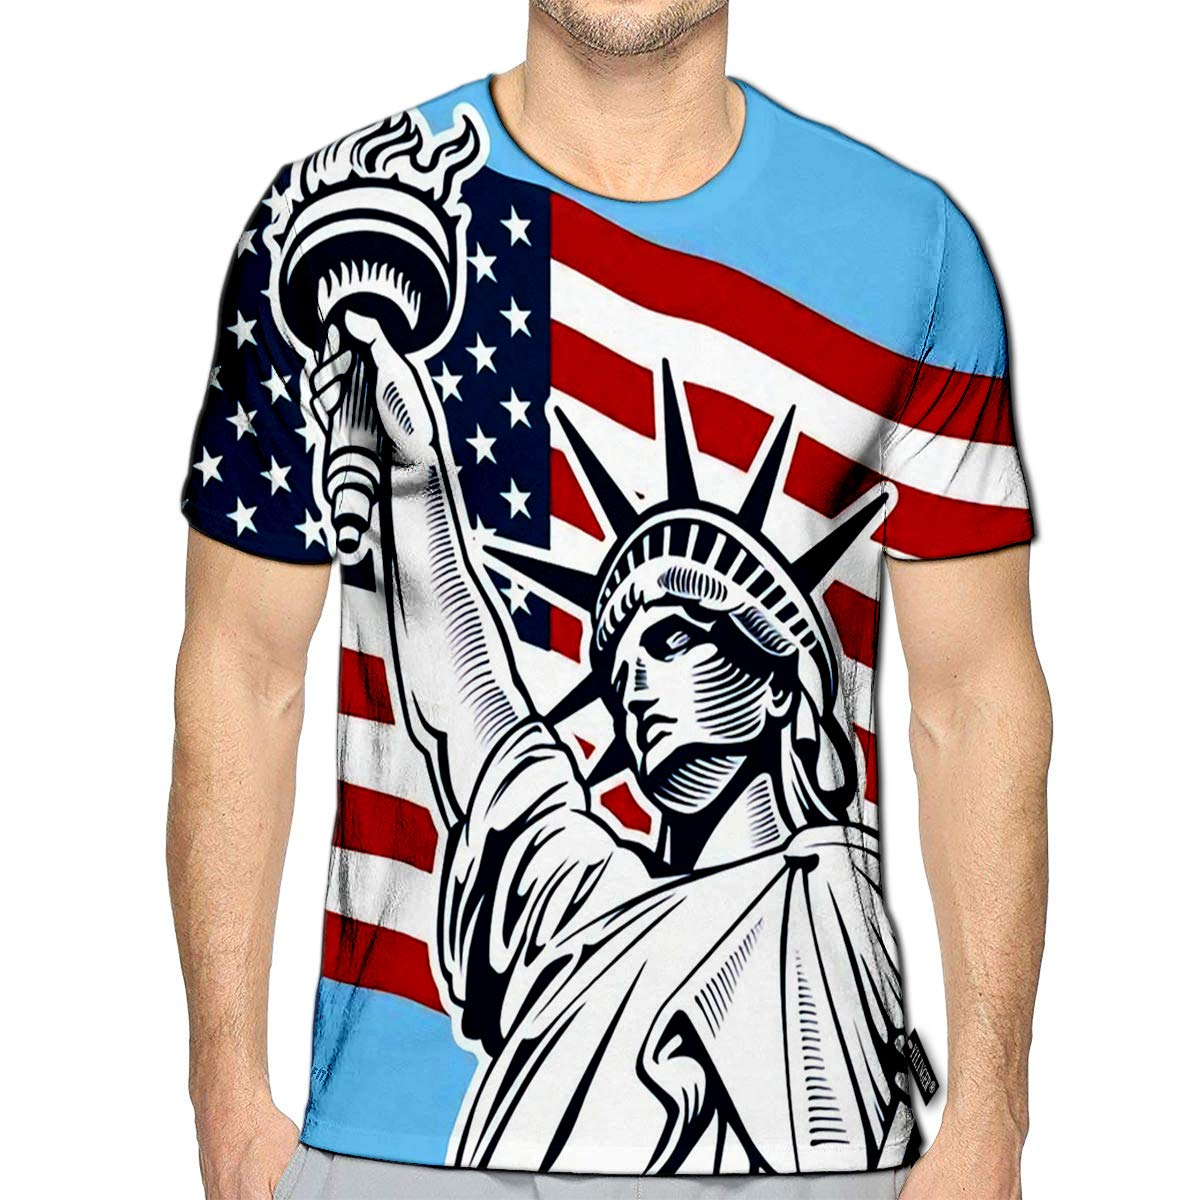 T-Shirt 3D Printed Statue of Liberty USA Flag NYC Fourth July Independence Day Casual Tees